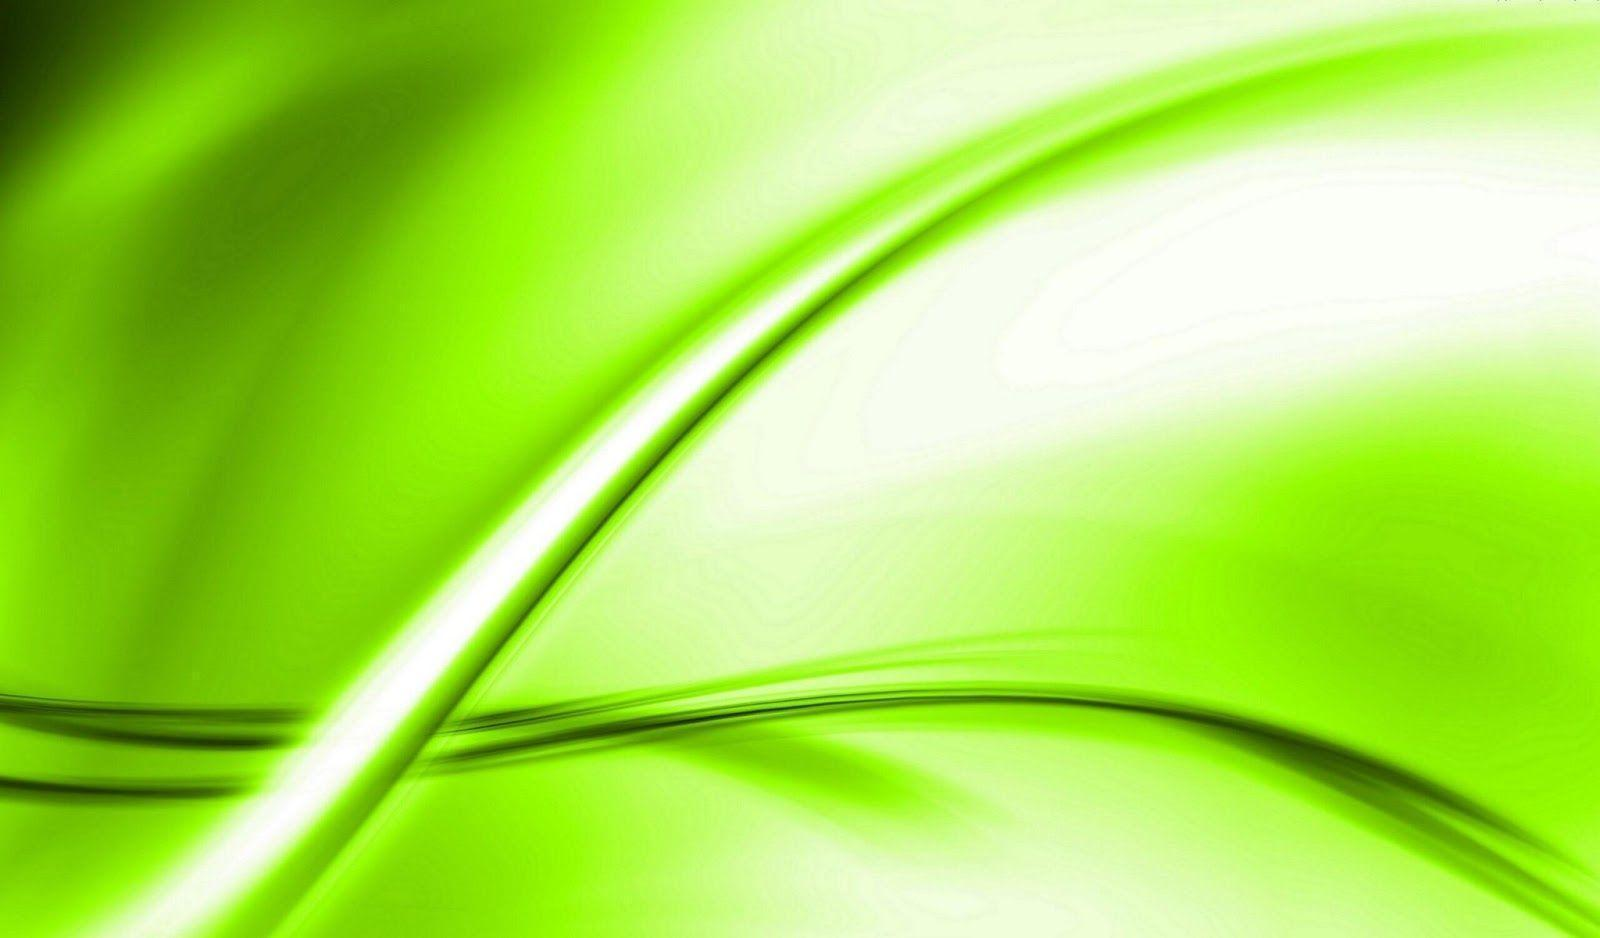 light green color backgrounds - photo #35